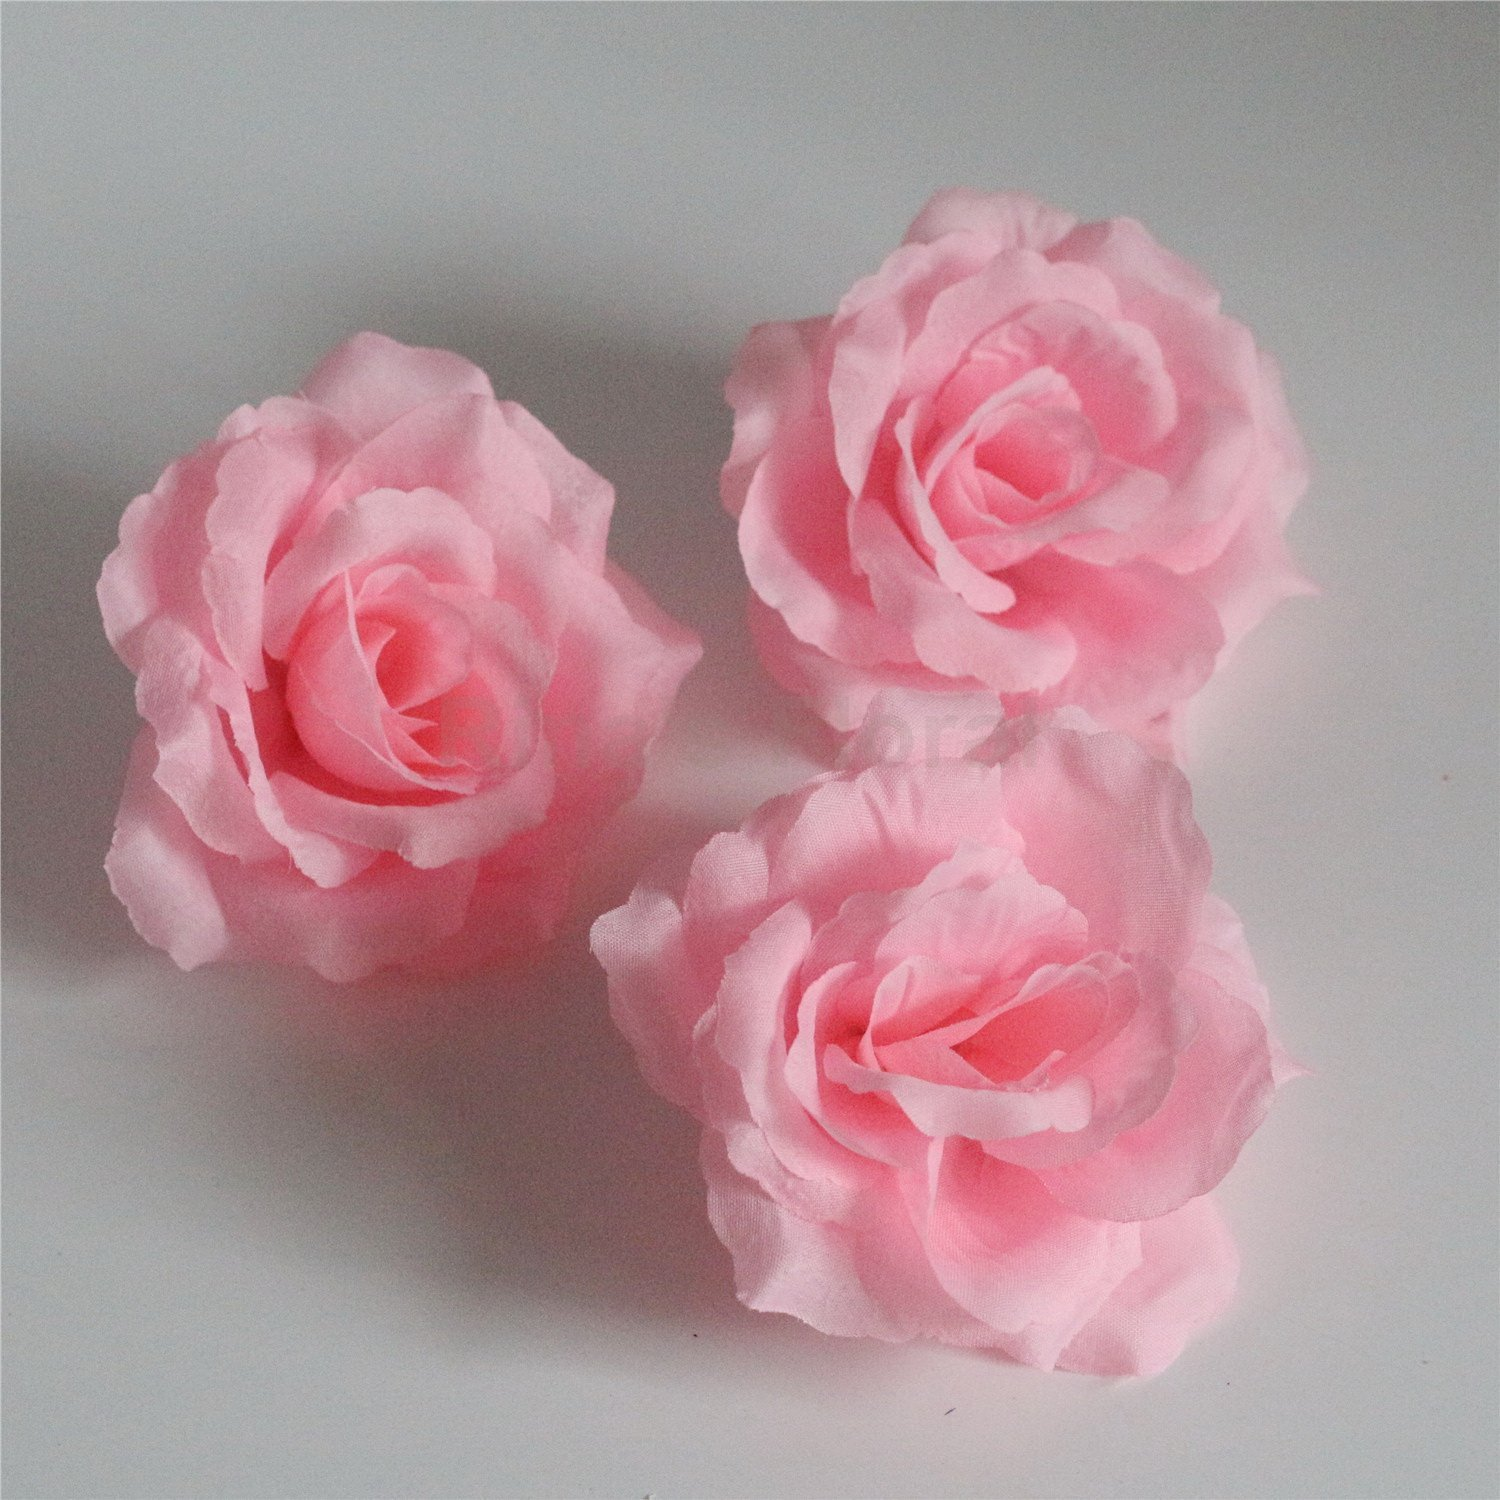 Silk Flowers Wholesale 100 Artificial Silk Rose Heads Bulk Flowers 10cm For Flower Wall Kissing Balls Wedding Supplies (Pink)